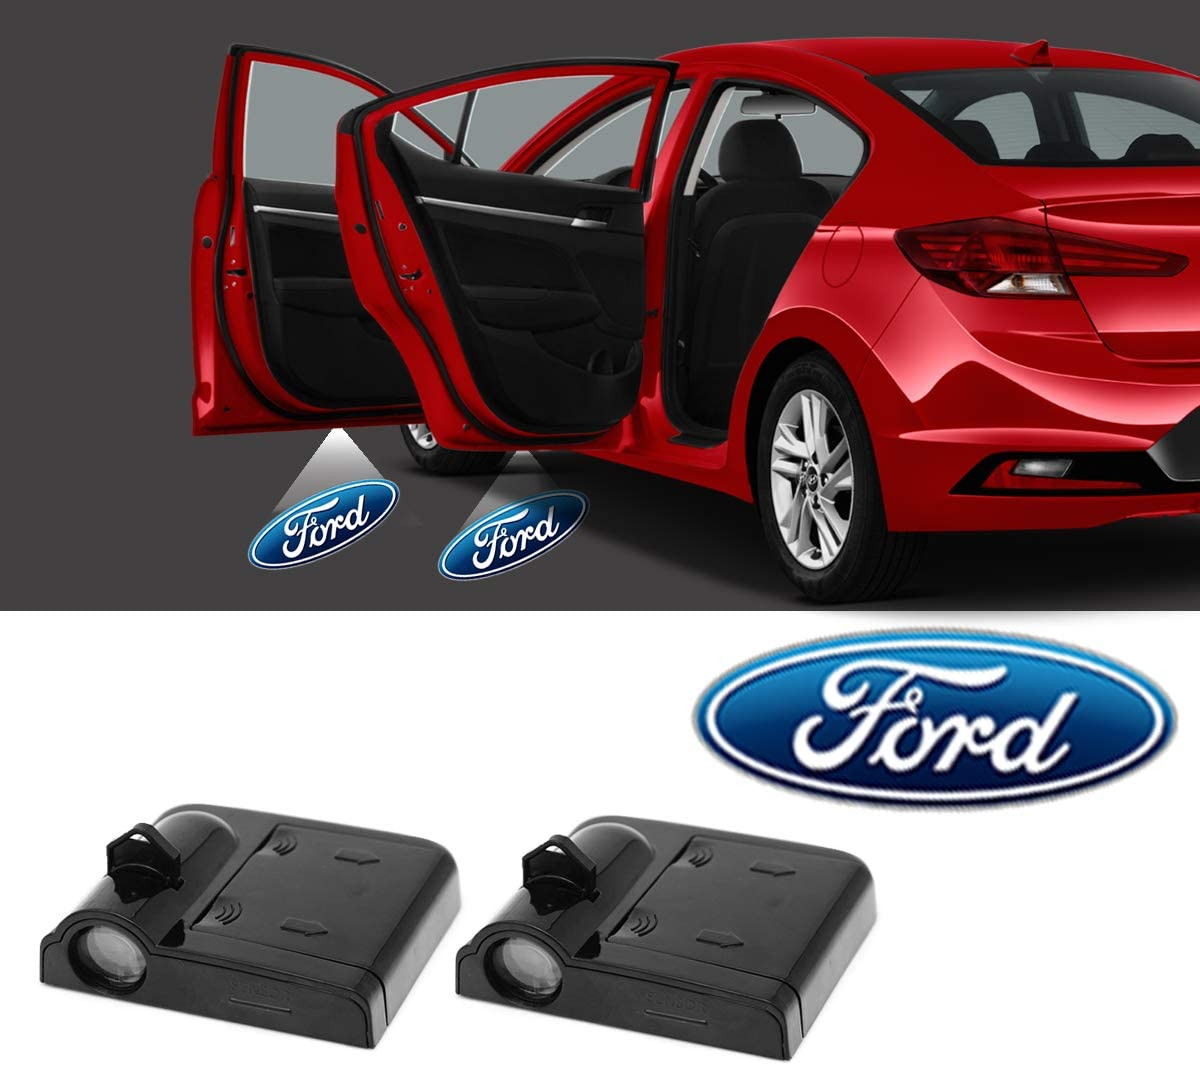 wireless-universal-2pcs-car-projection-led-projector-door-shadow-light-welcome-light-laser-emblem-logo-lamps-kit-for-ford-all-models